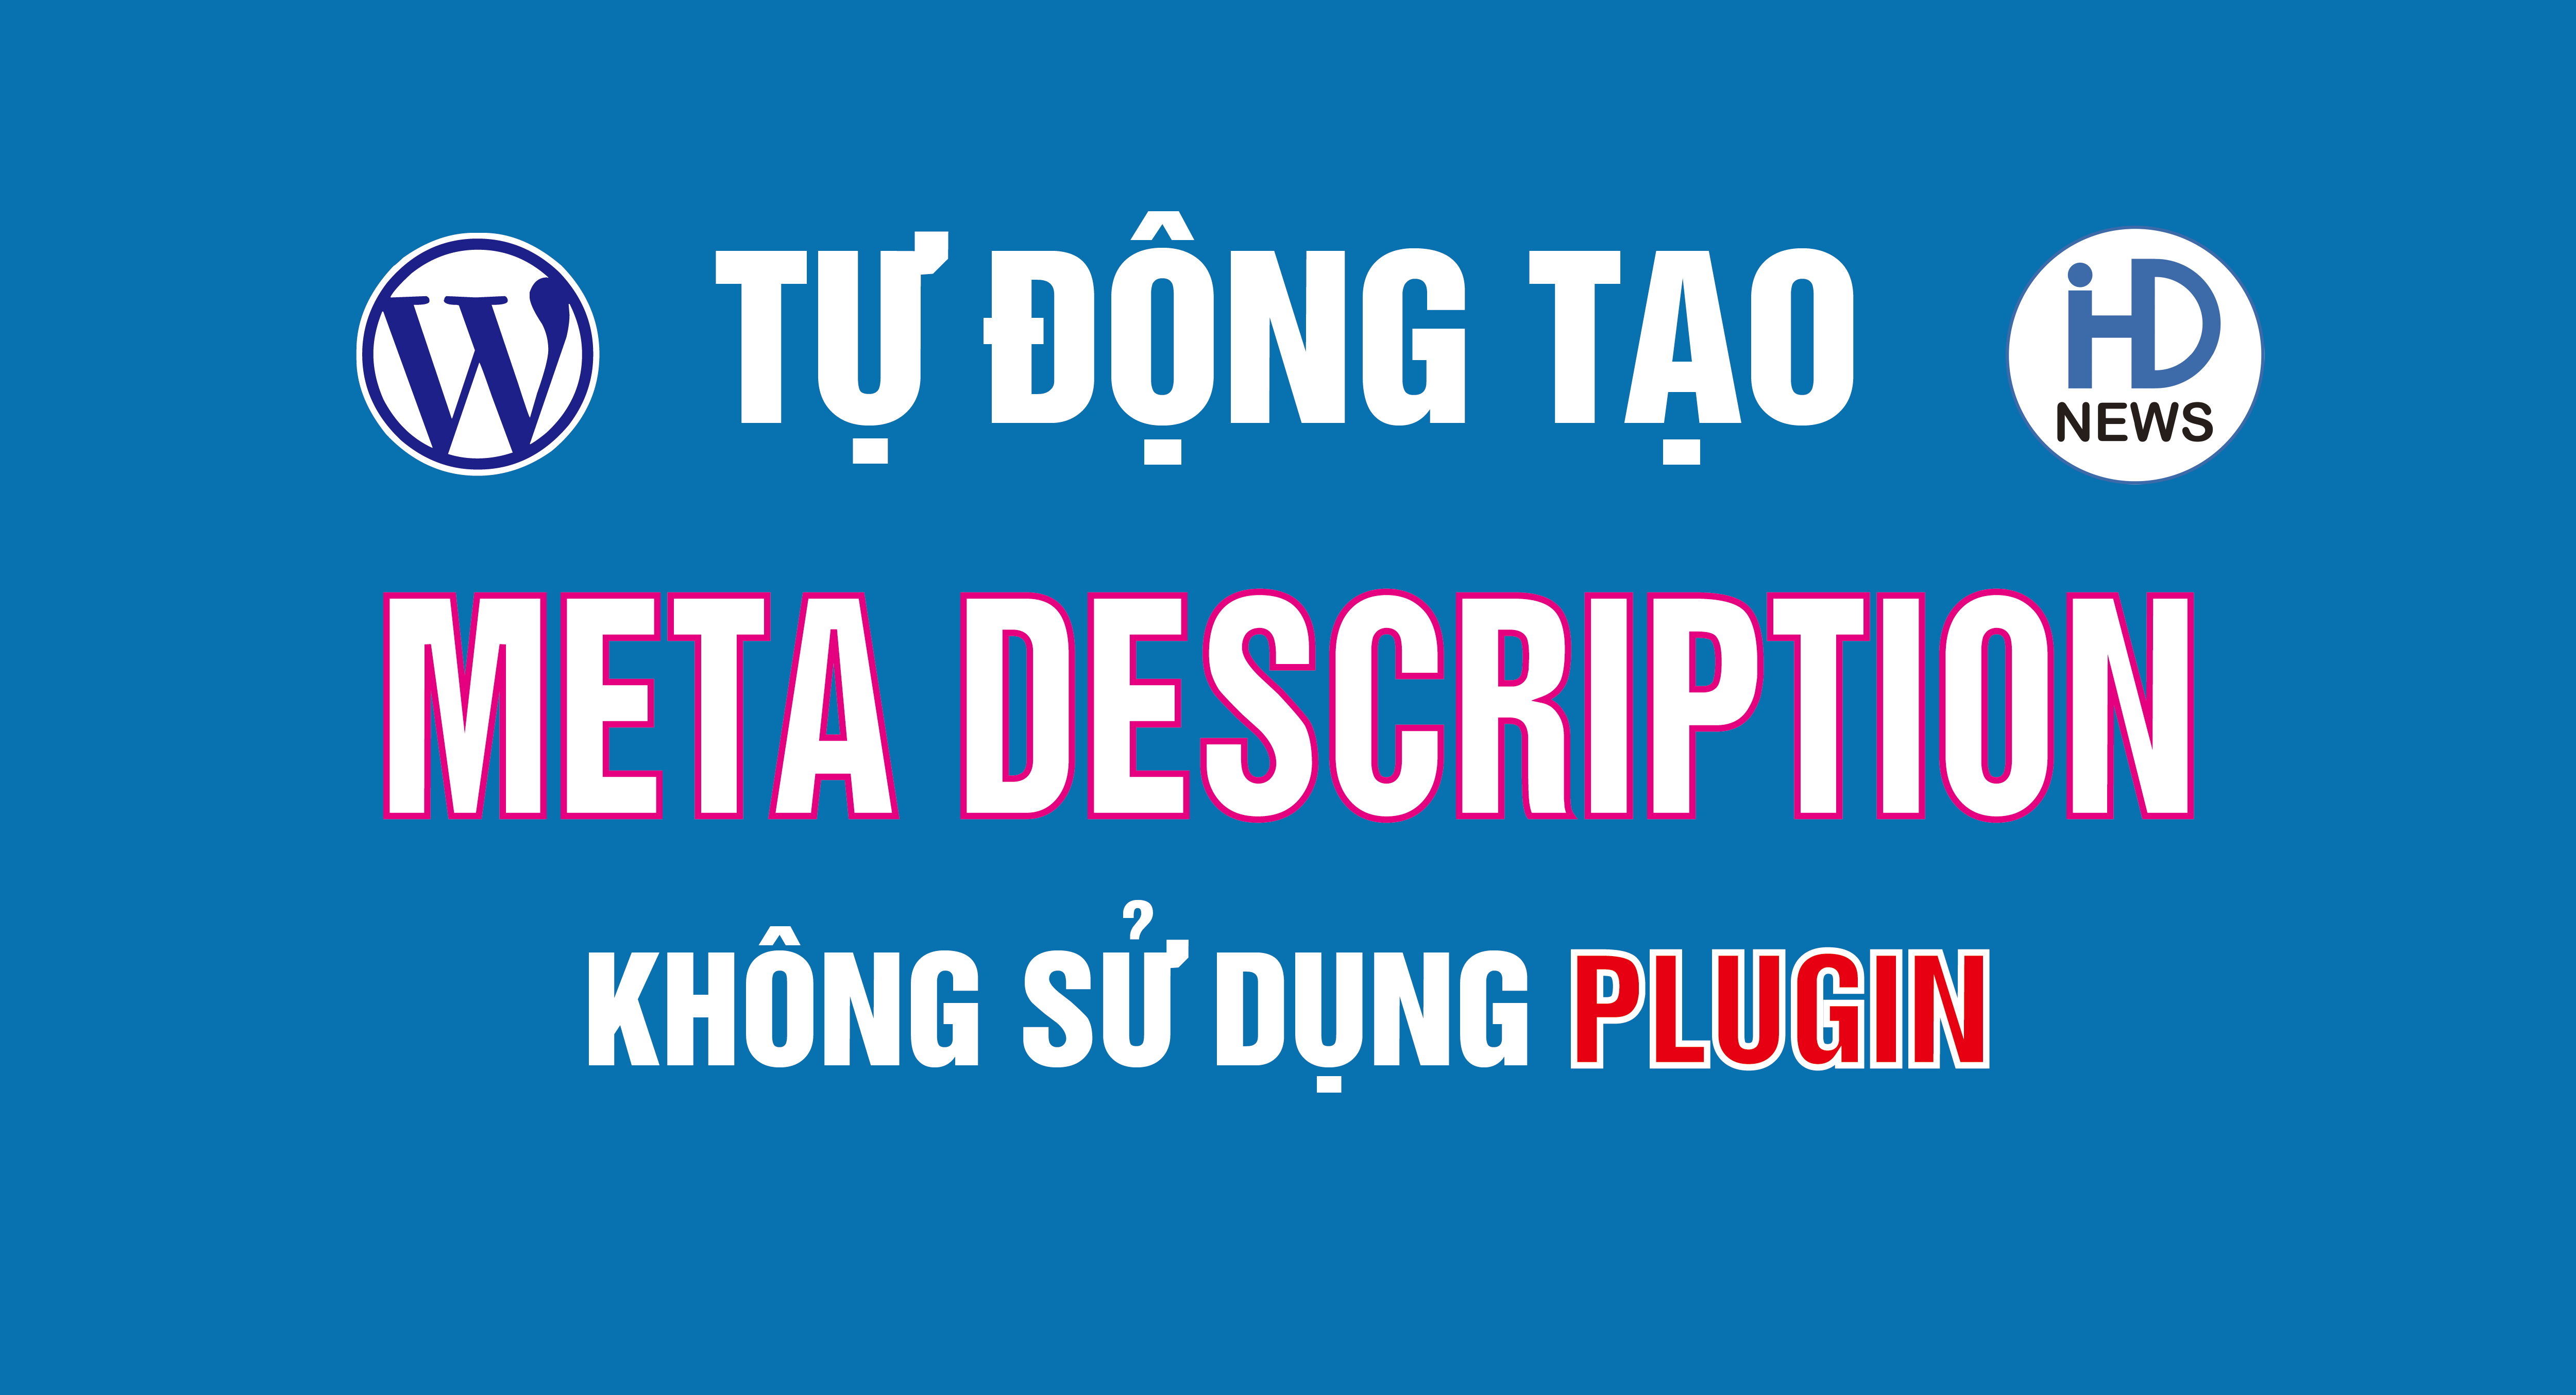 tu dong tao the meta description